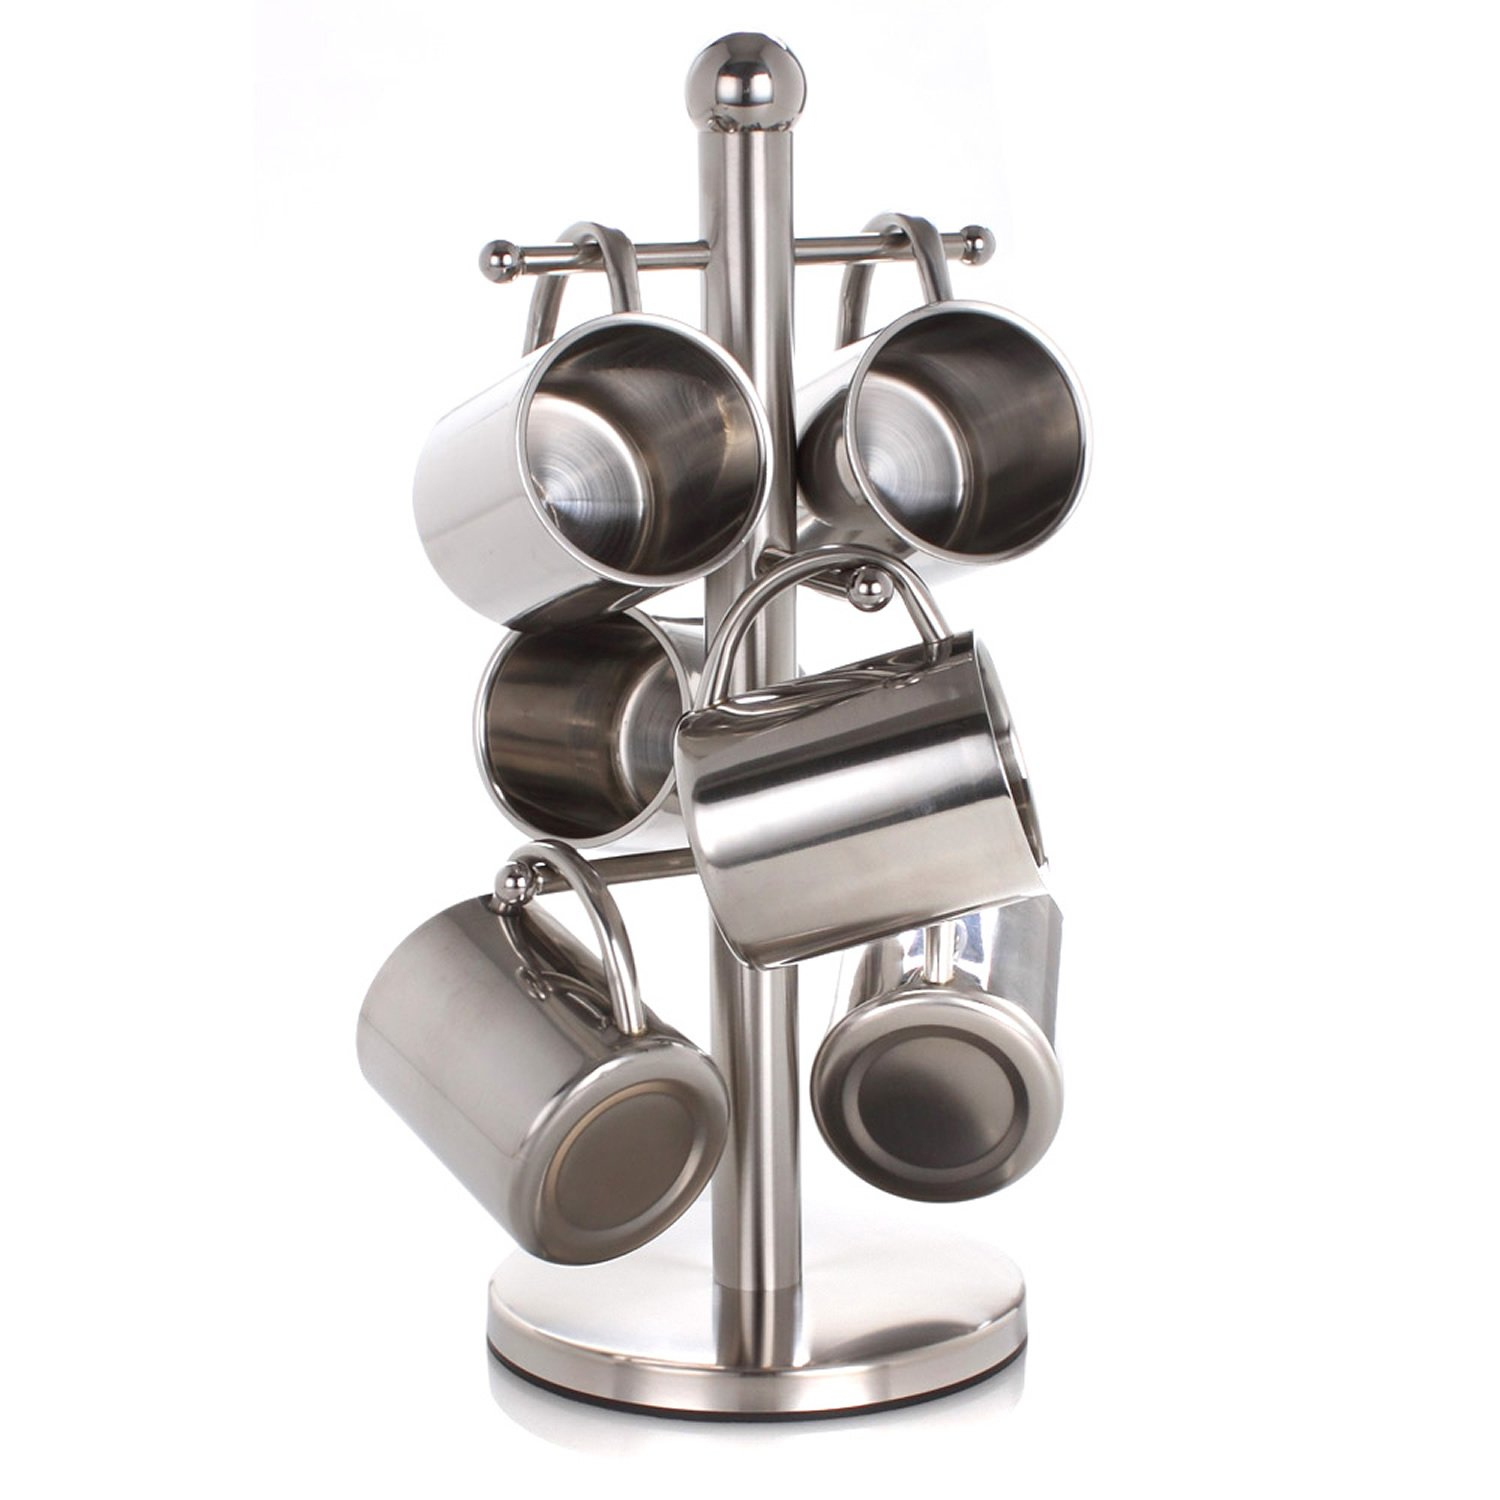 HUPPYNUTS Cups & Mugs Set Cup Holder 200mL Double-deck Stainless Steel Cup Coffee Beer Mug Heatproof Cup, Set of 6 Cups and Cup rack